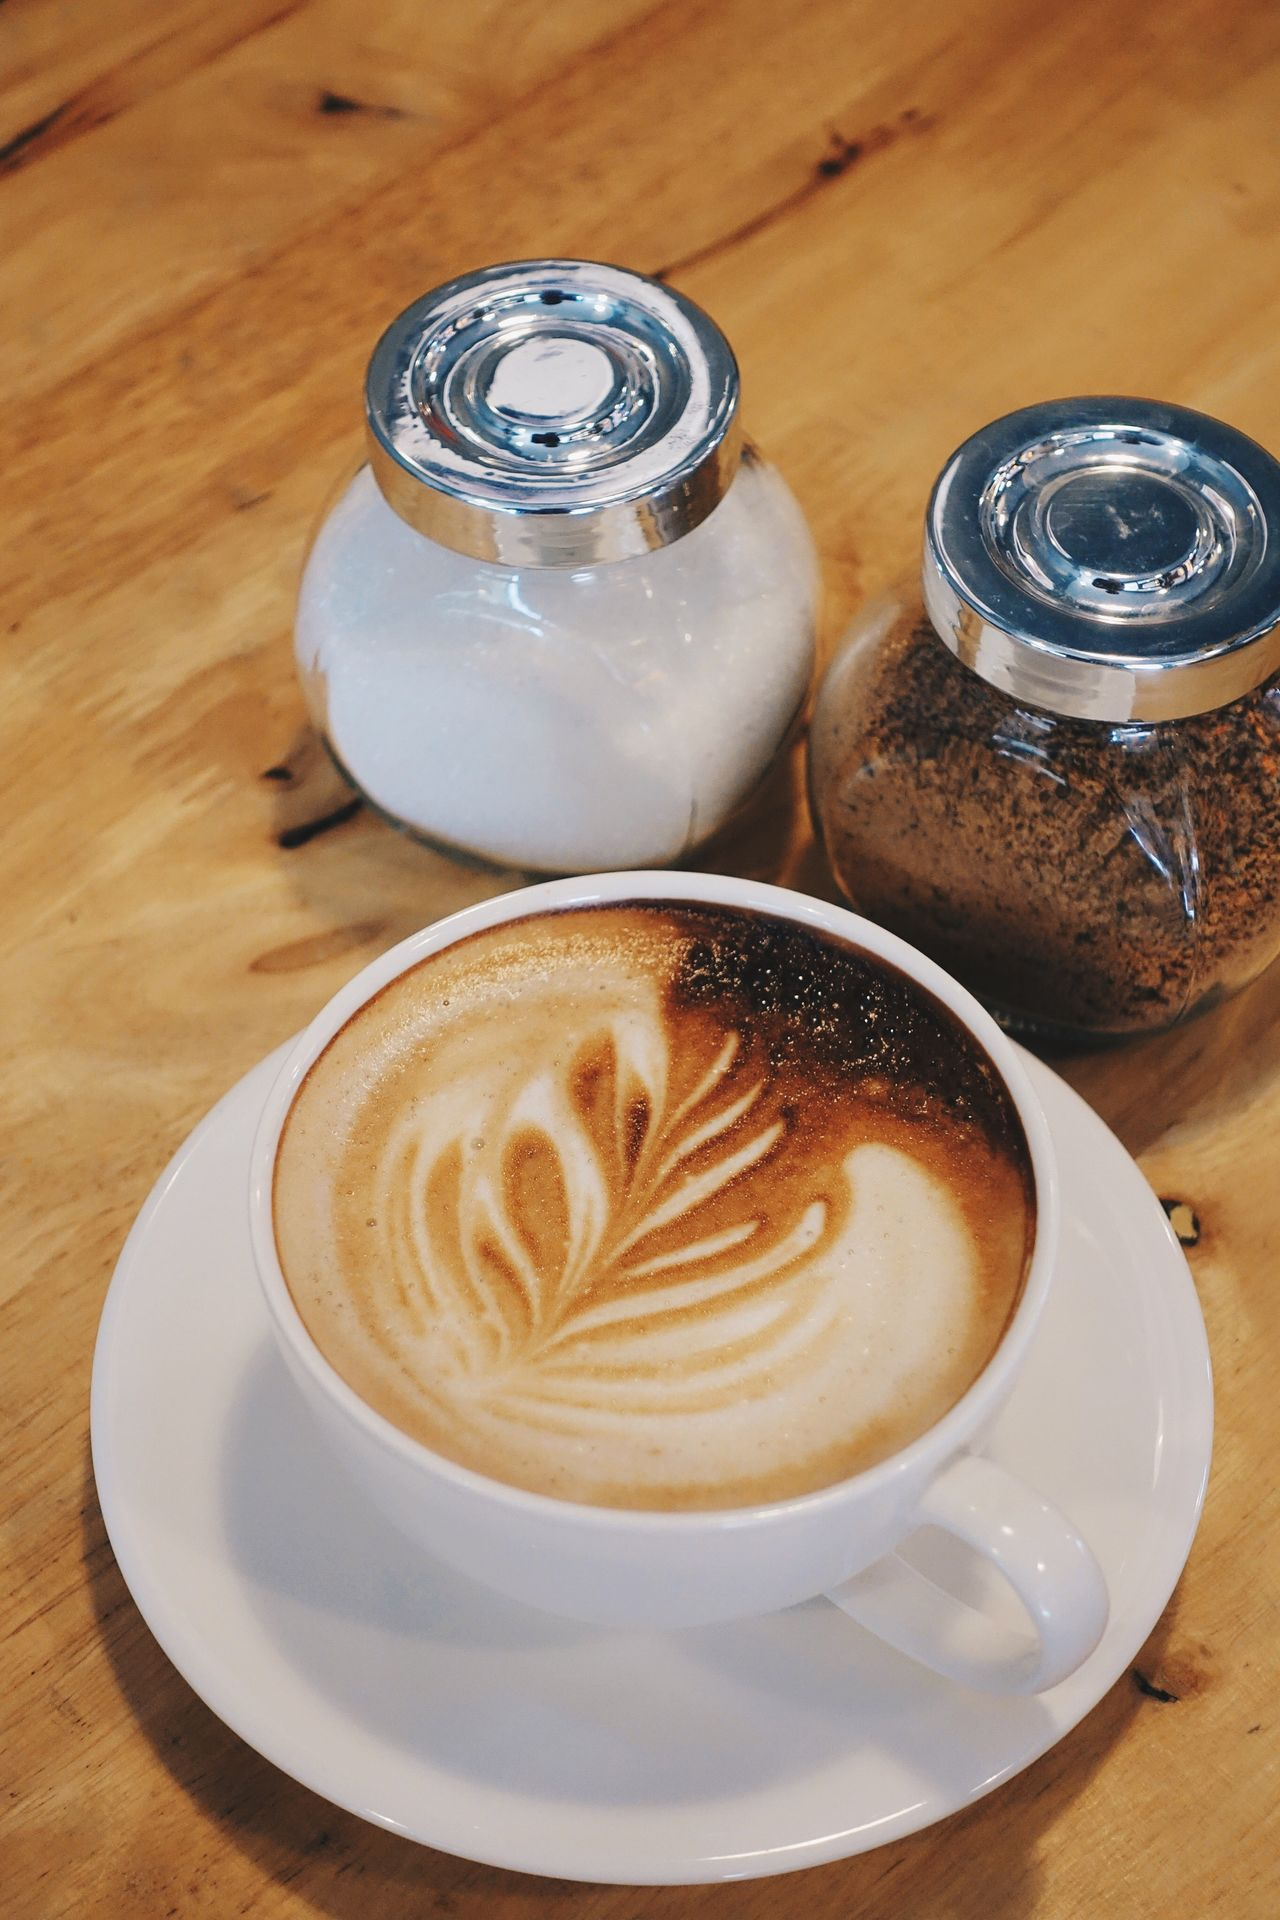 Happiness in a cup Table Coffee - Drink Food And Drink Cappuccino Indoors  Freshness Close-up Latte Froth Art Relaxing Coffee Coffee Break Coffee Time Take A Break Startup Refreshment Delicious Cup Of Coffee